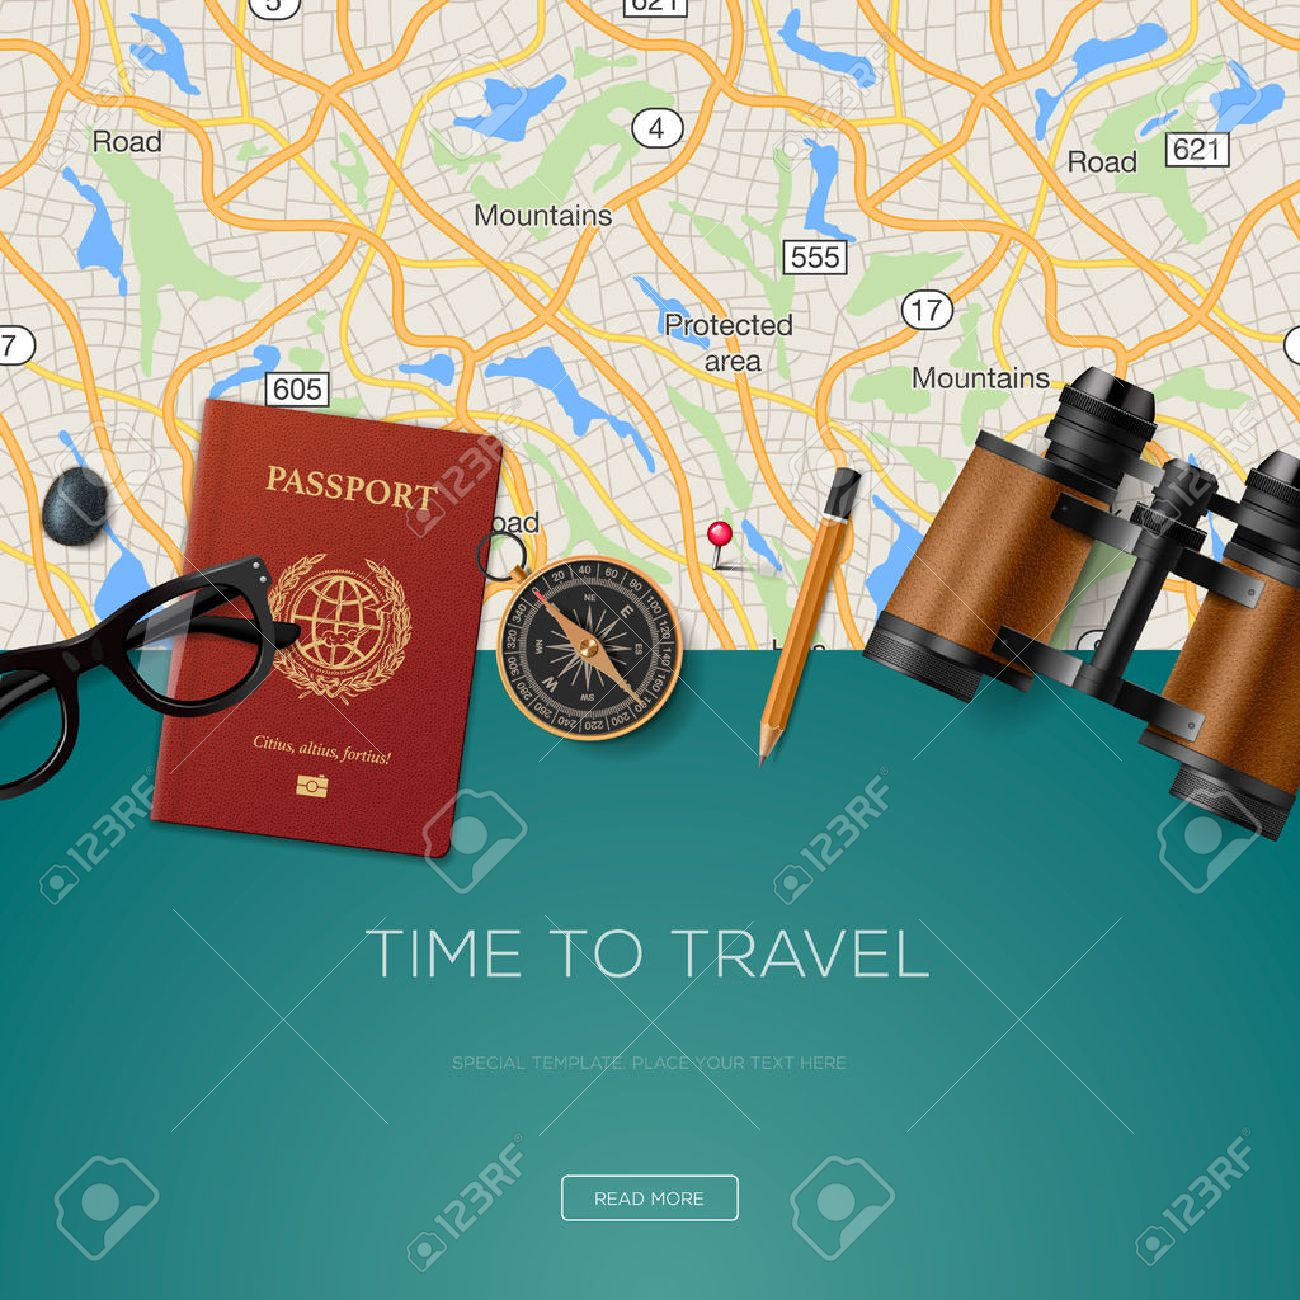 Travel and adventure template, time to travel, for tourism website, illustration. Stock Vector - 50067483